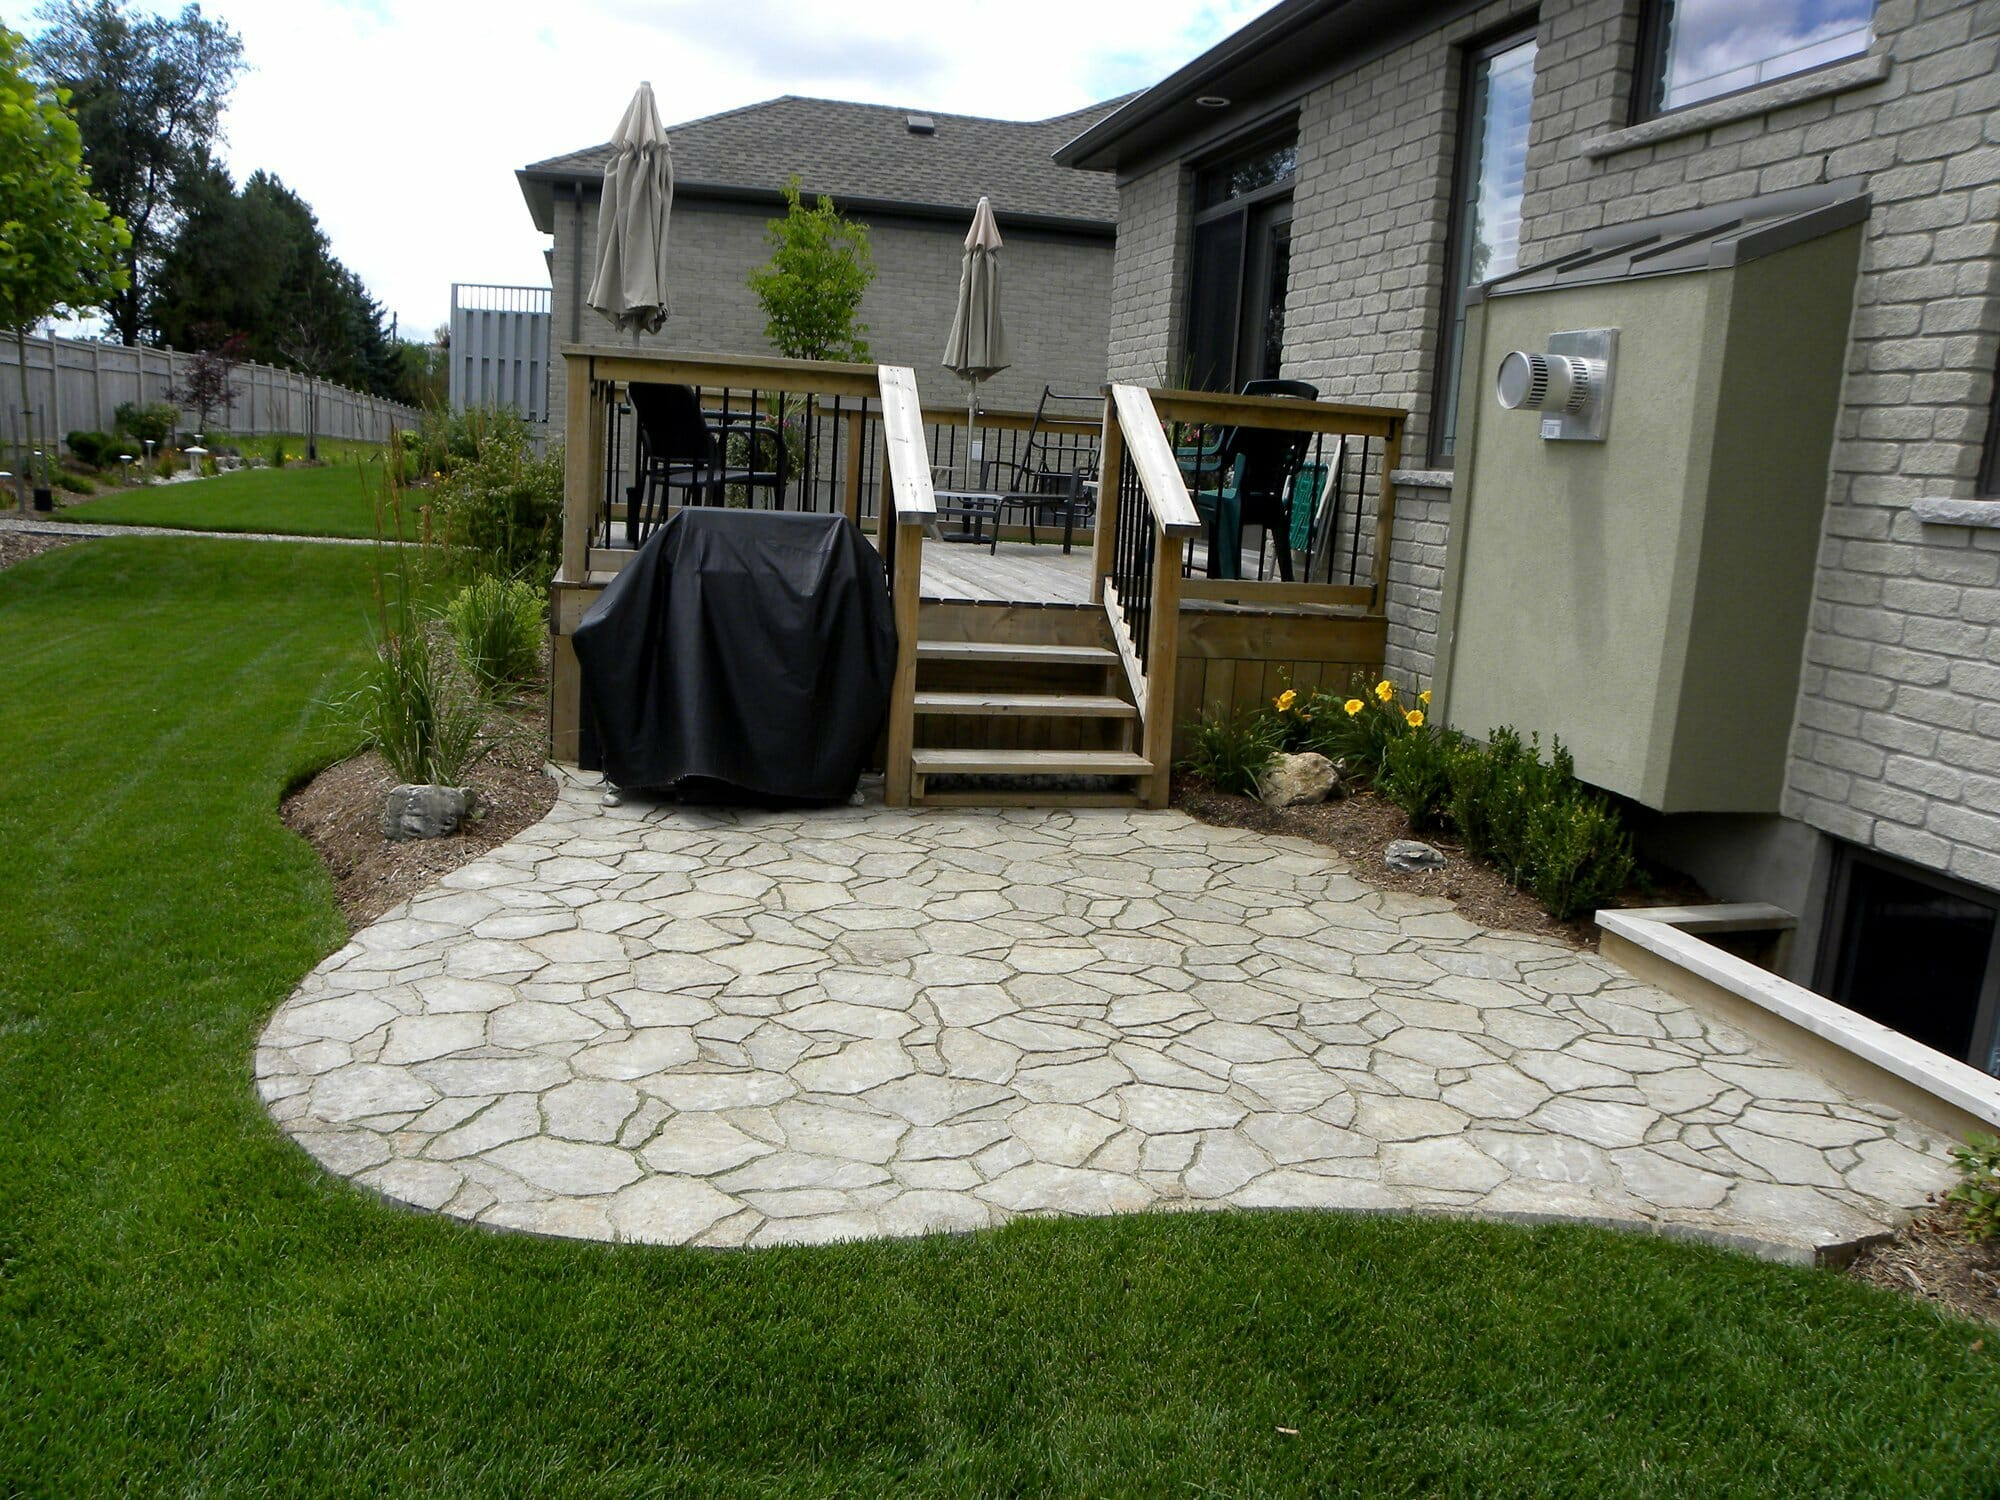 Backyard Interlock Patio Installation - London, Ontario Landscaping & Custom Landscape Design